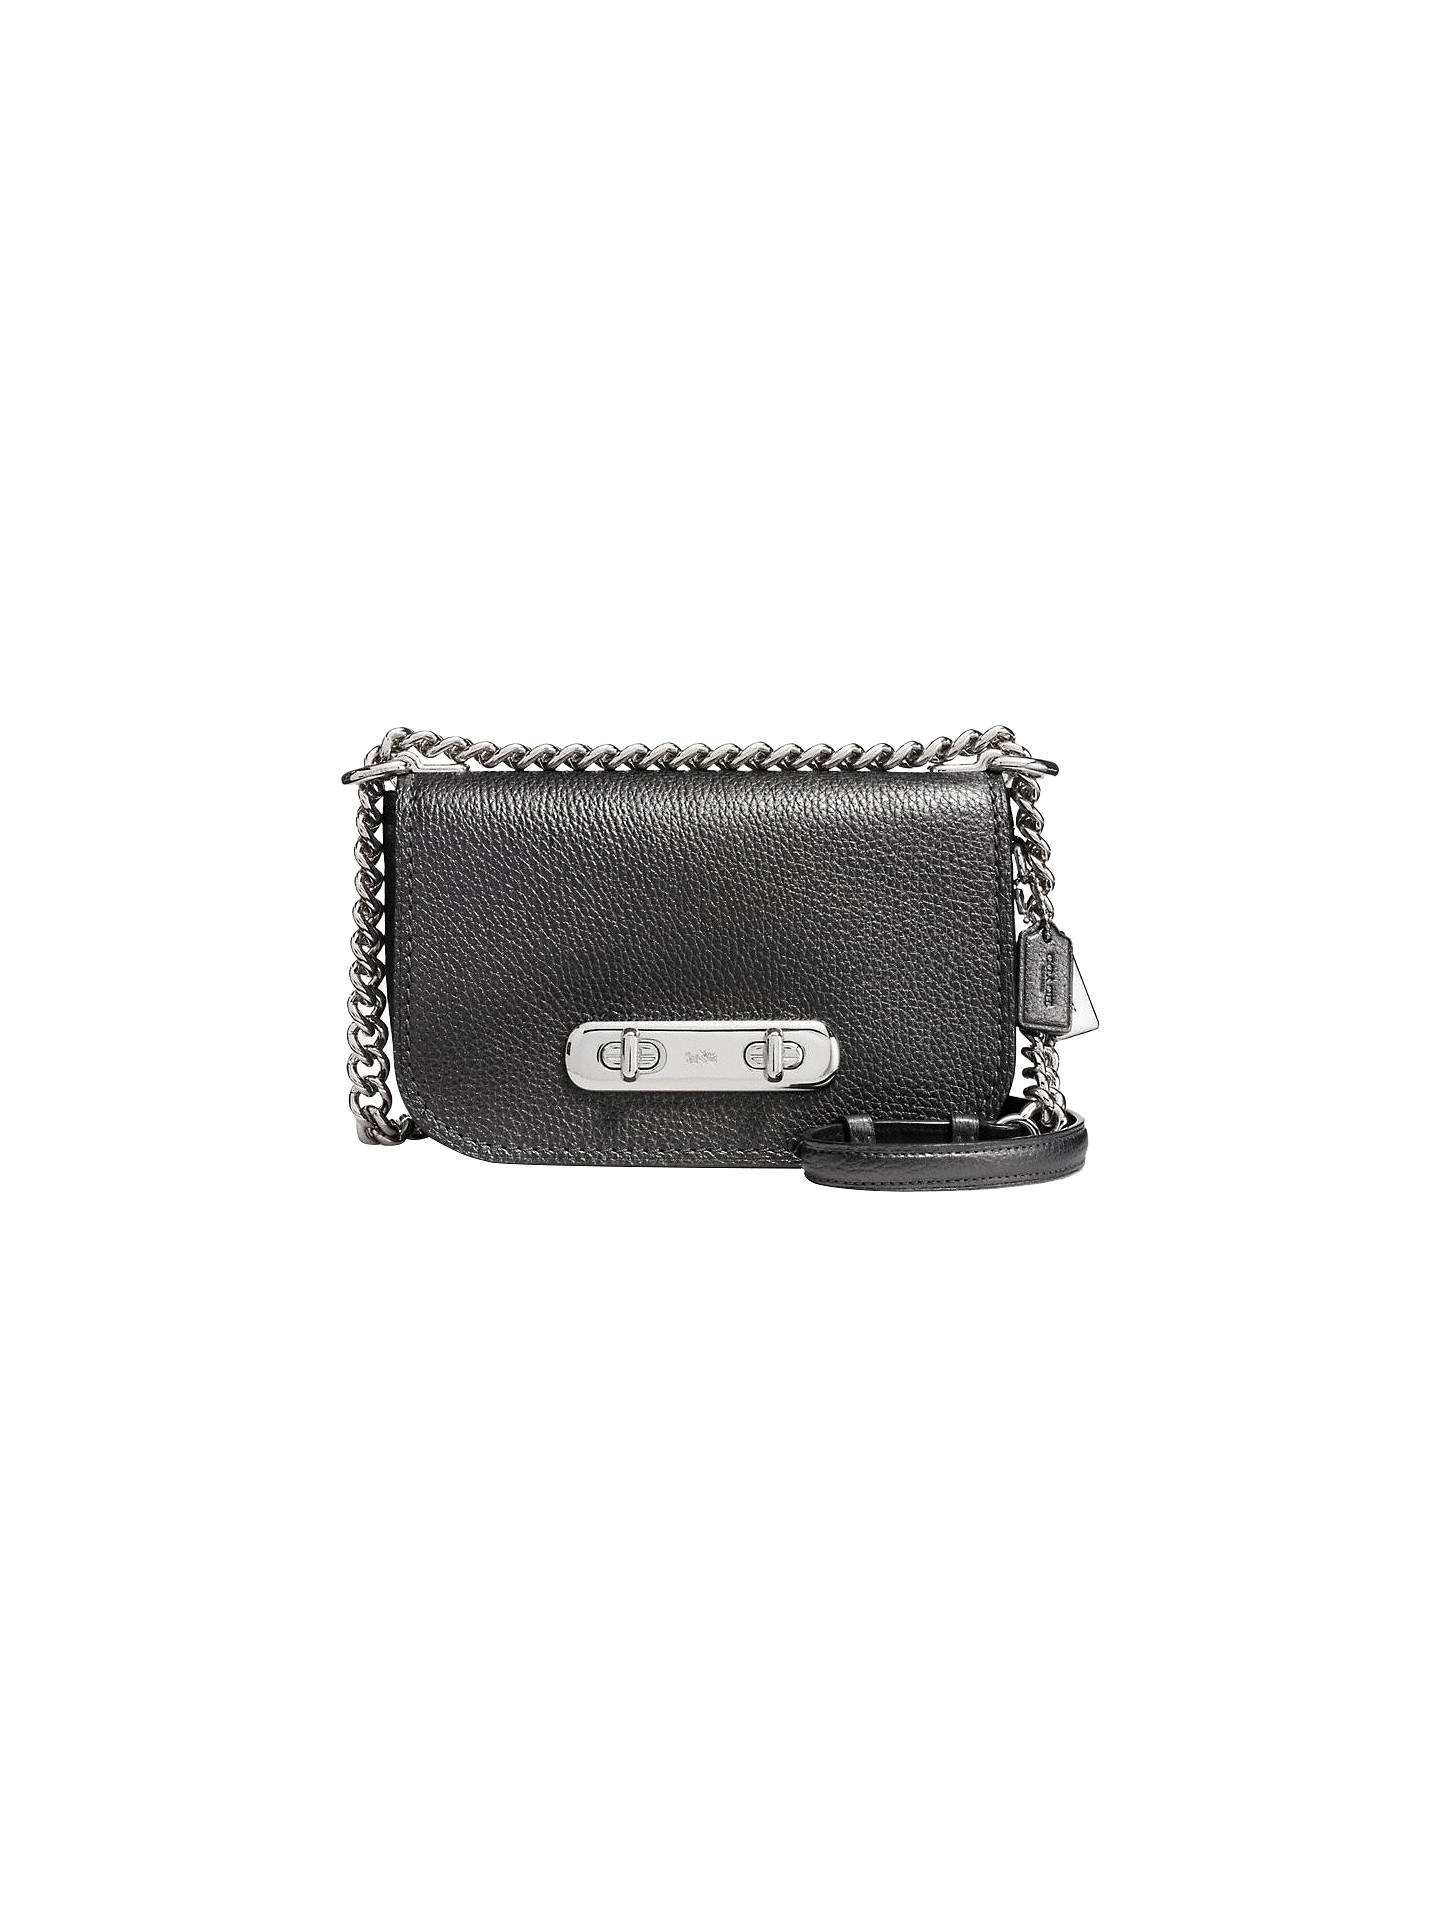 5861f6cbd Buy Coach Swagger Leather Shoulder Bag, Metallic Graphite Online at  johnlewis.com ...